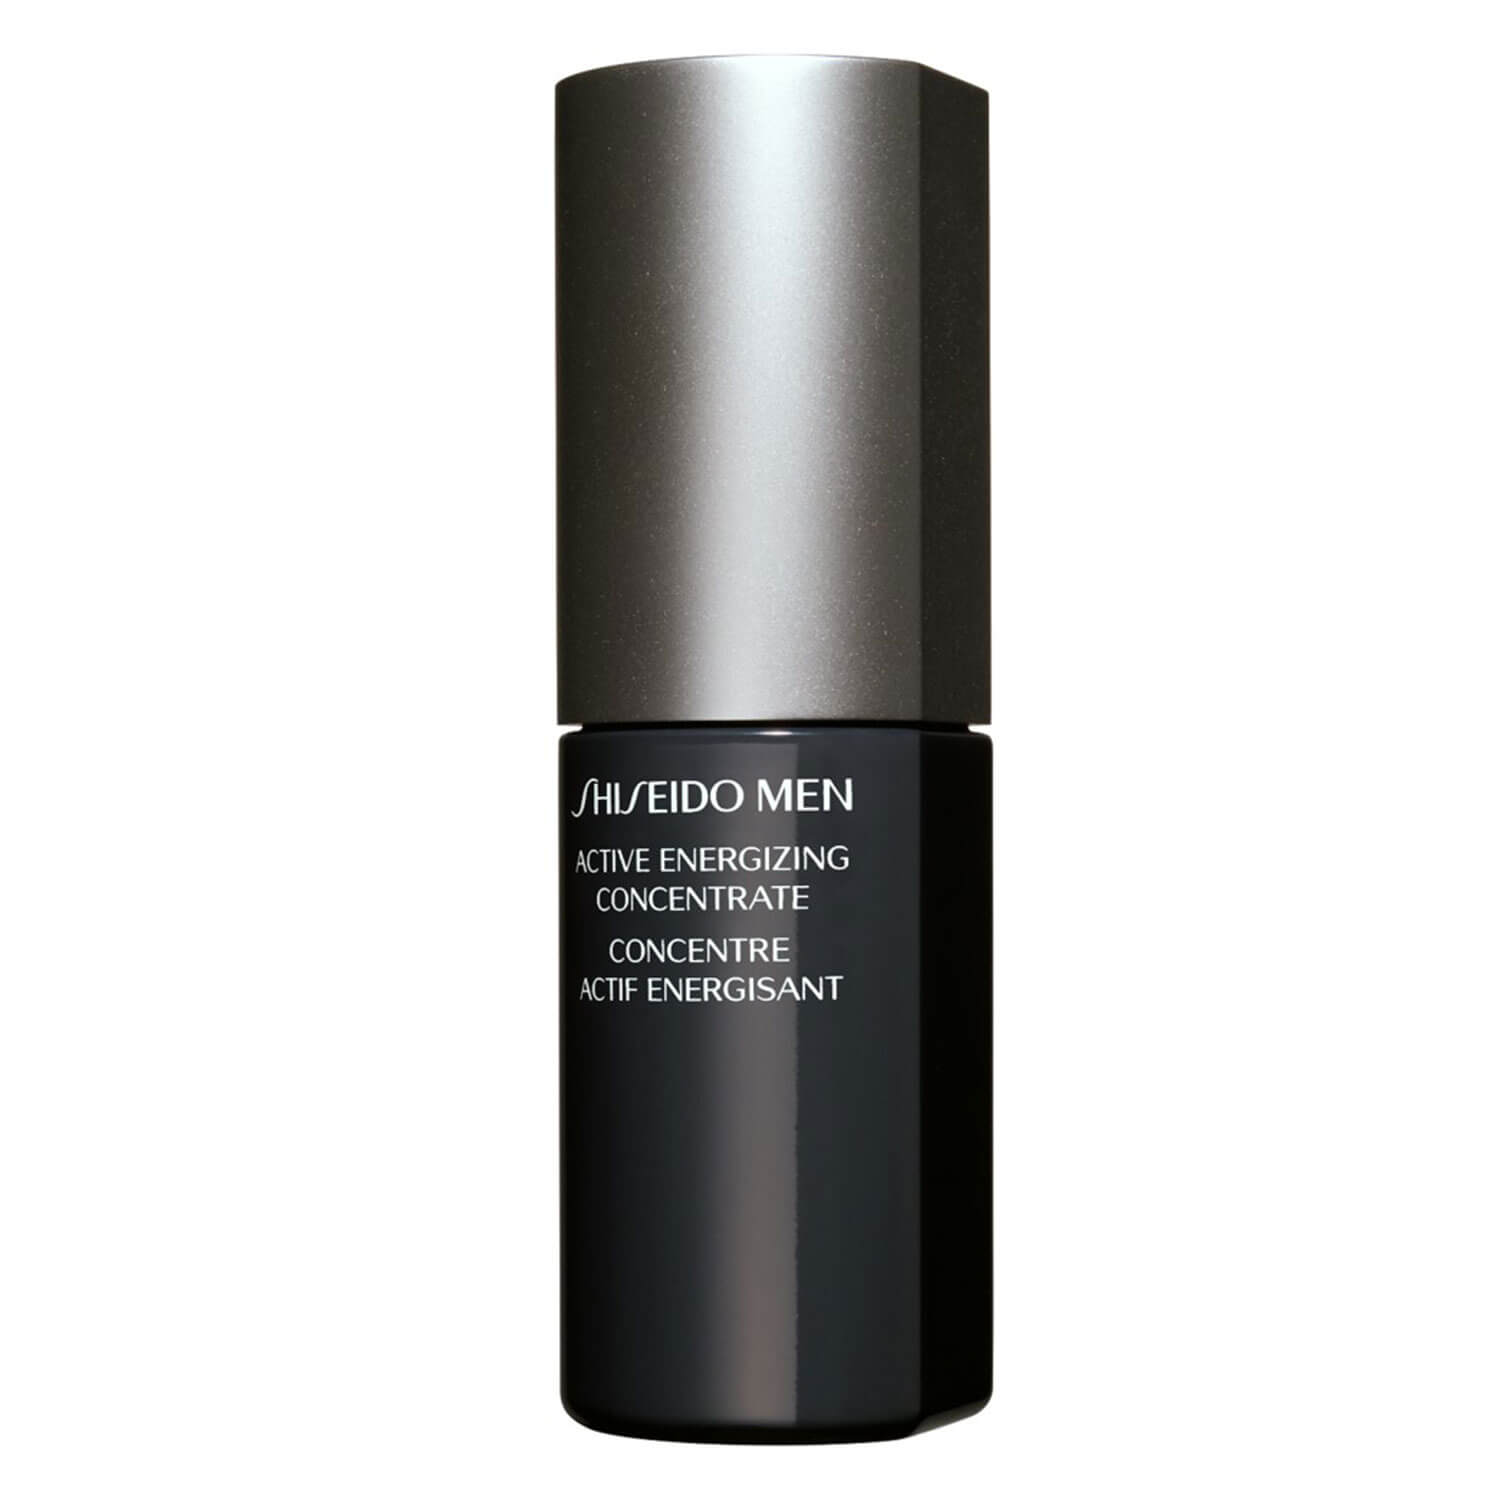 Shiseido Men - Active Energizing Concentrate